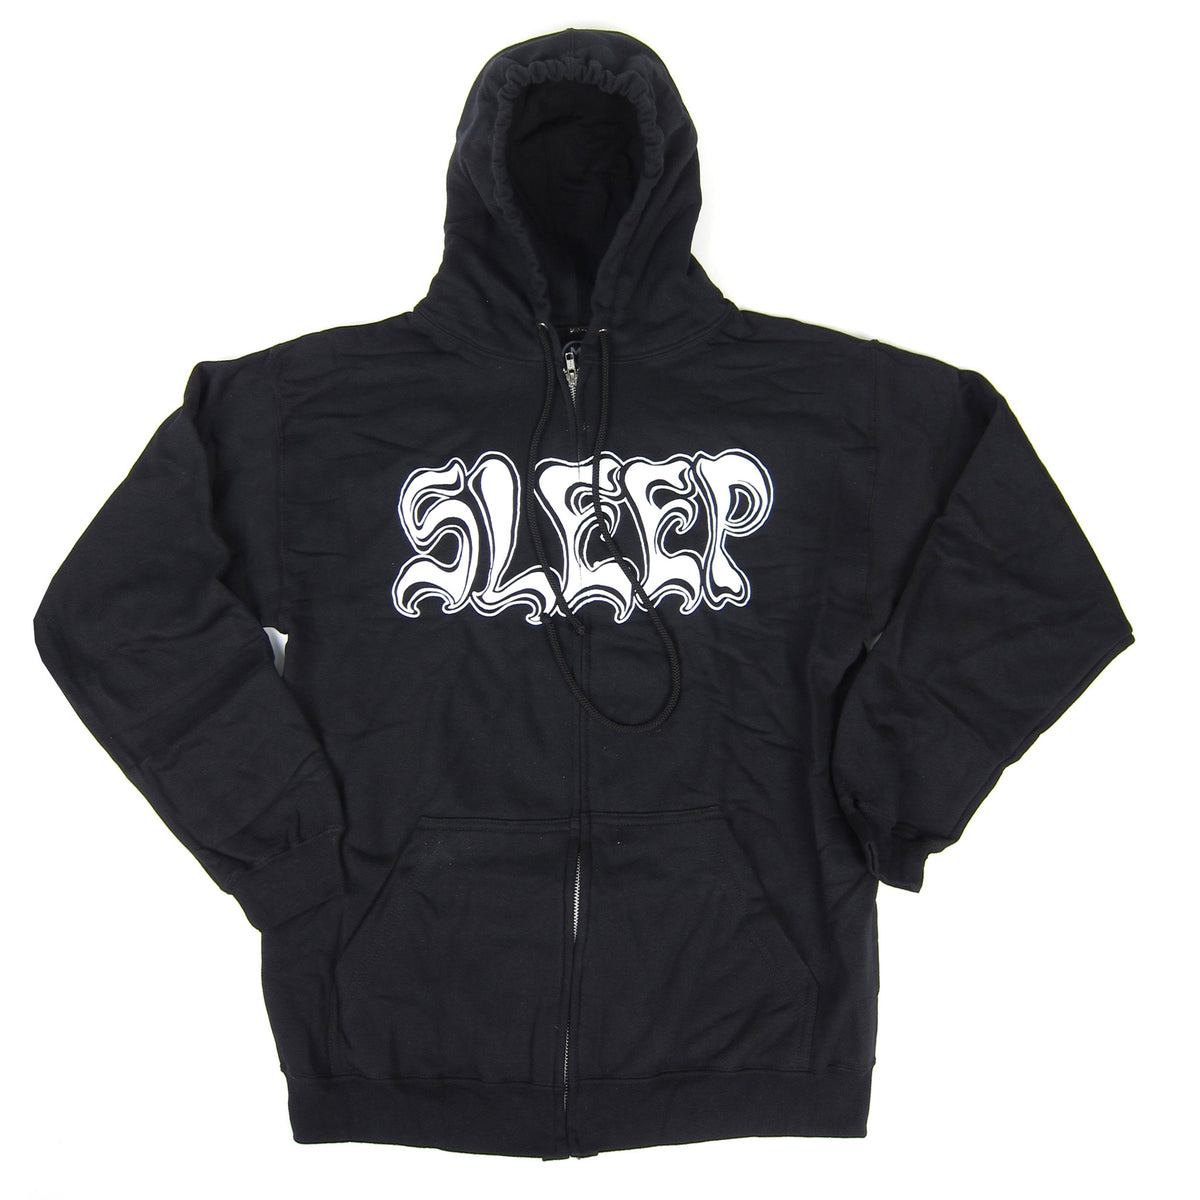 Sleep: Holy Mountain Zip Hoodie - Black